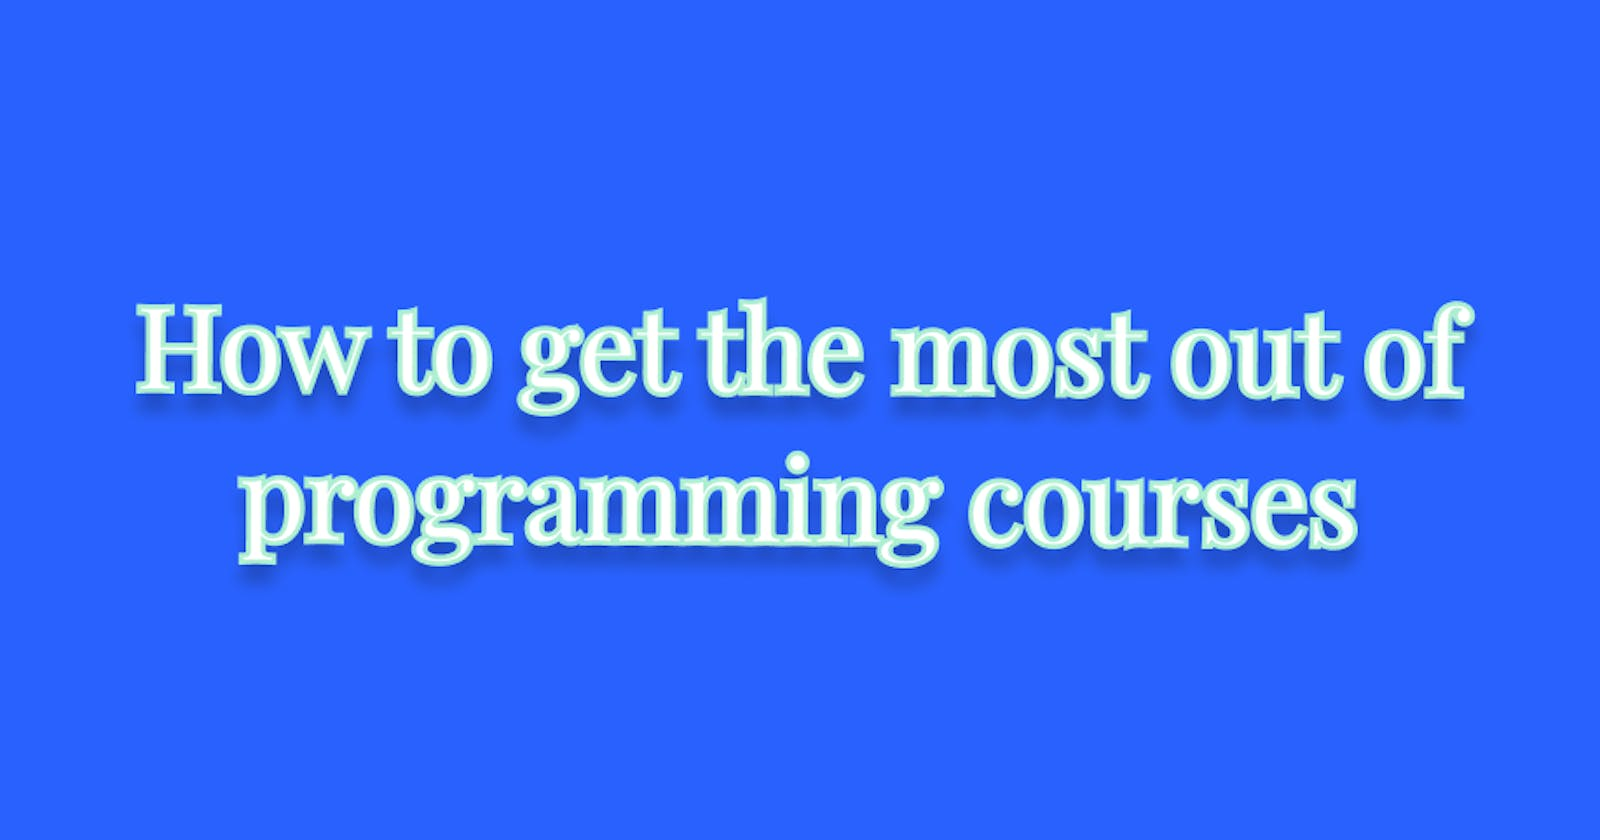 How to get the most out of programming courses